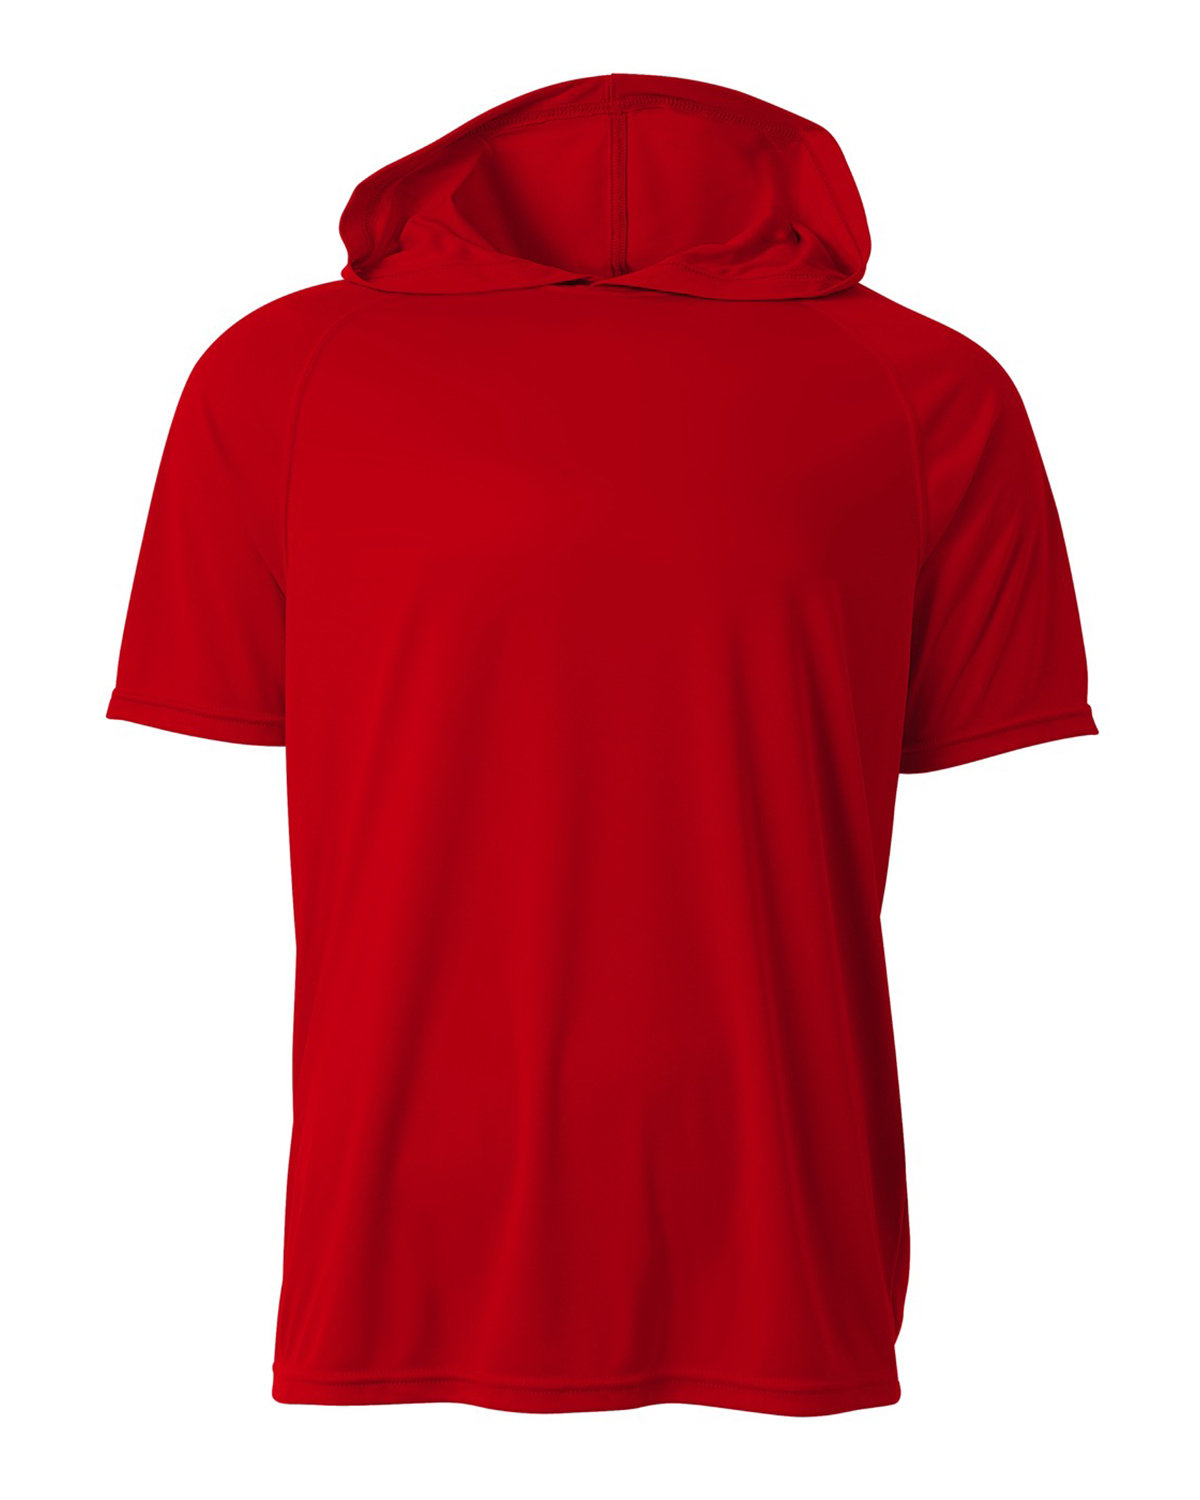 A4 Men's Cooling Performance Hooded T-shirt SCARLET